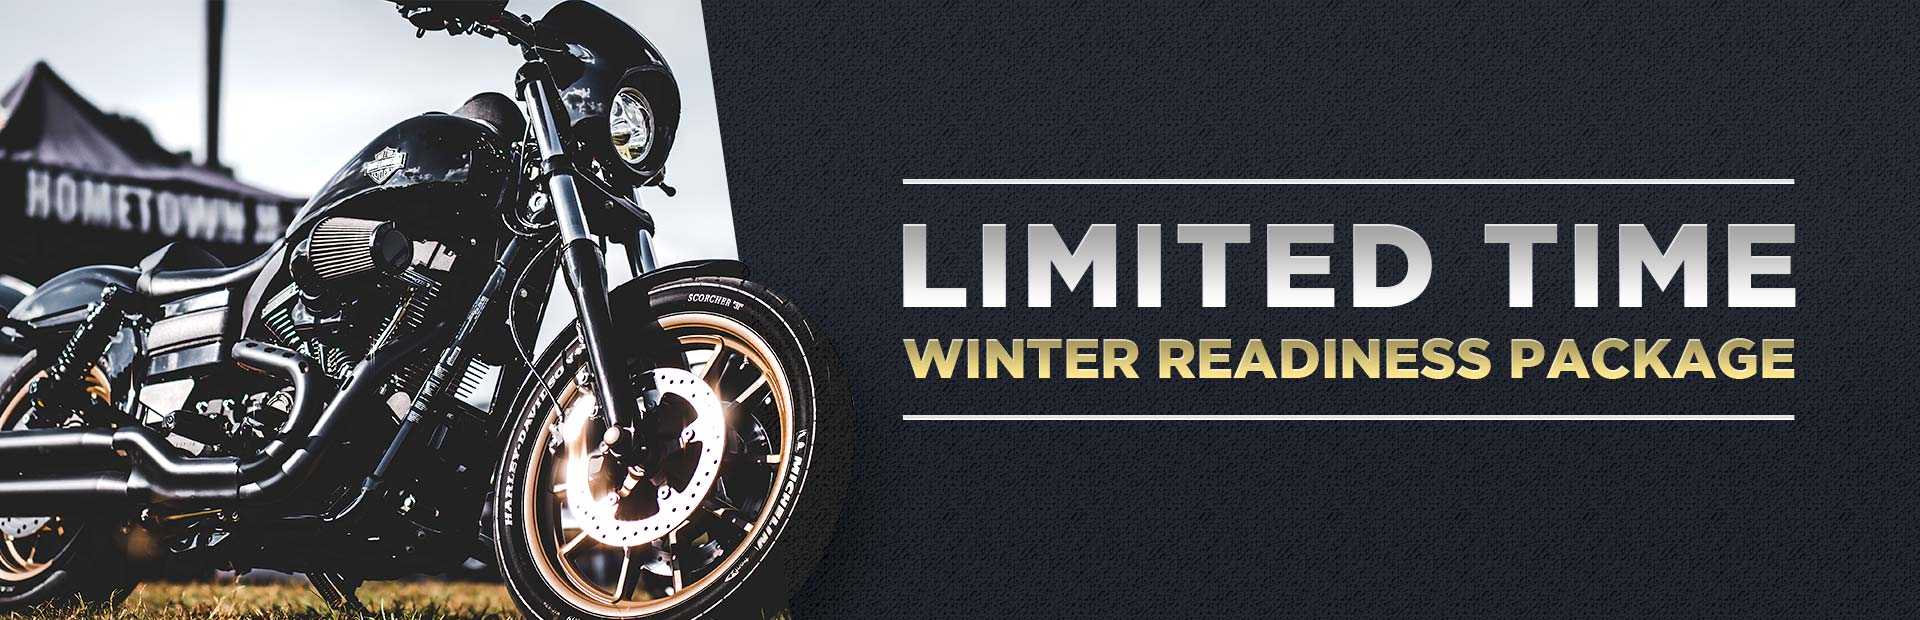 Limited Time Winter Readiness Package: Contact us for details.